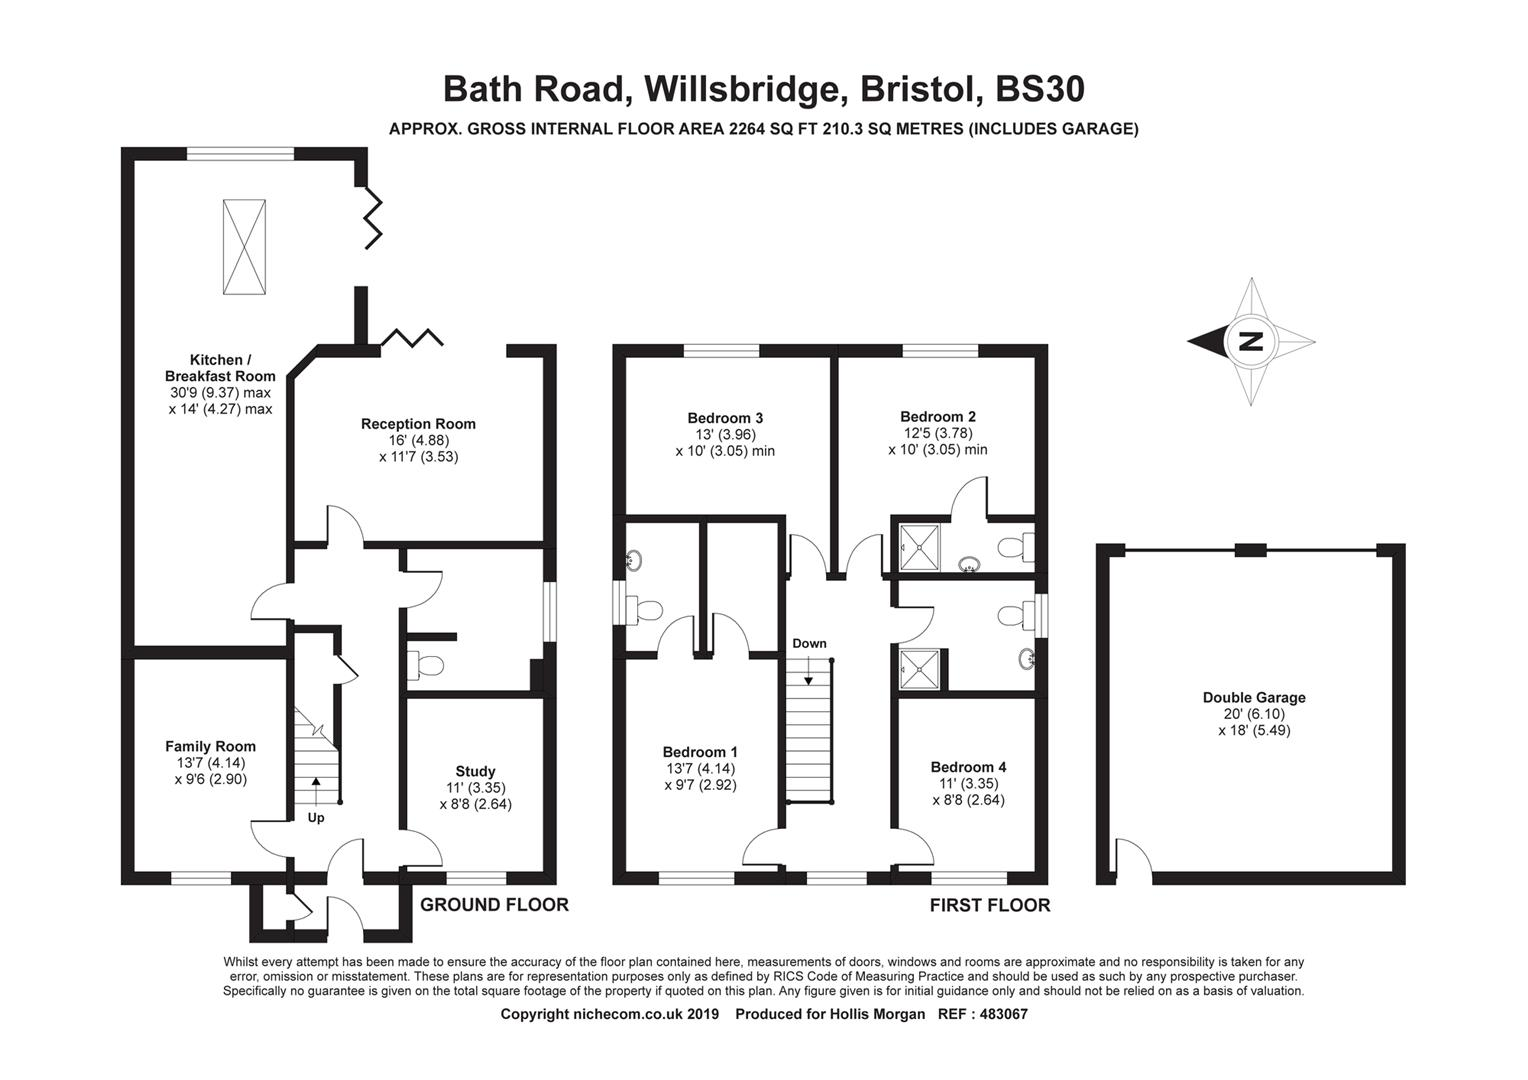 Floorplans For Bath Road, Willsbridge